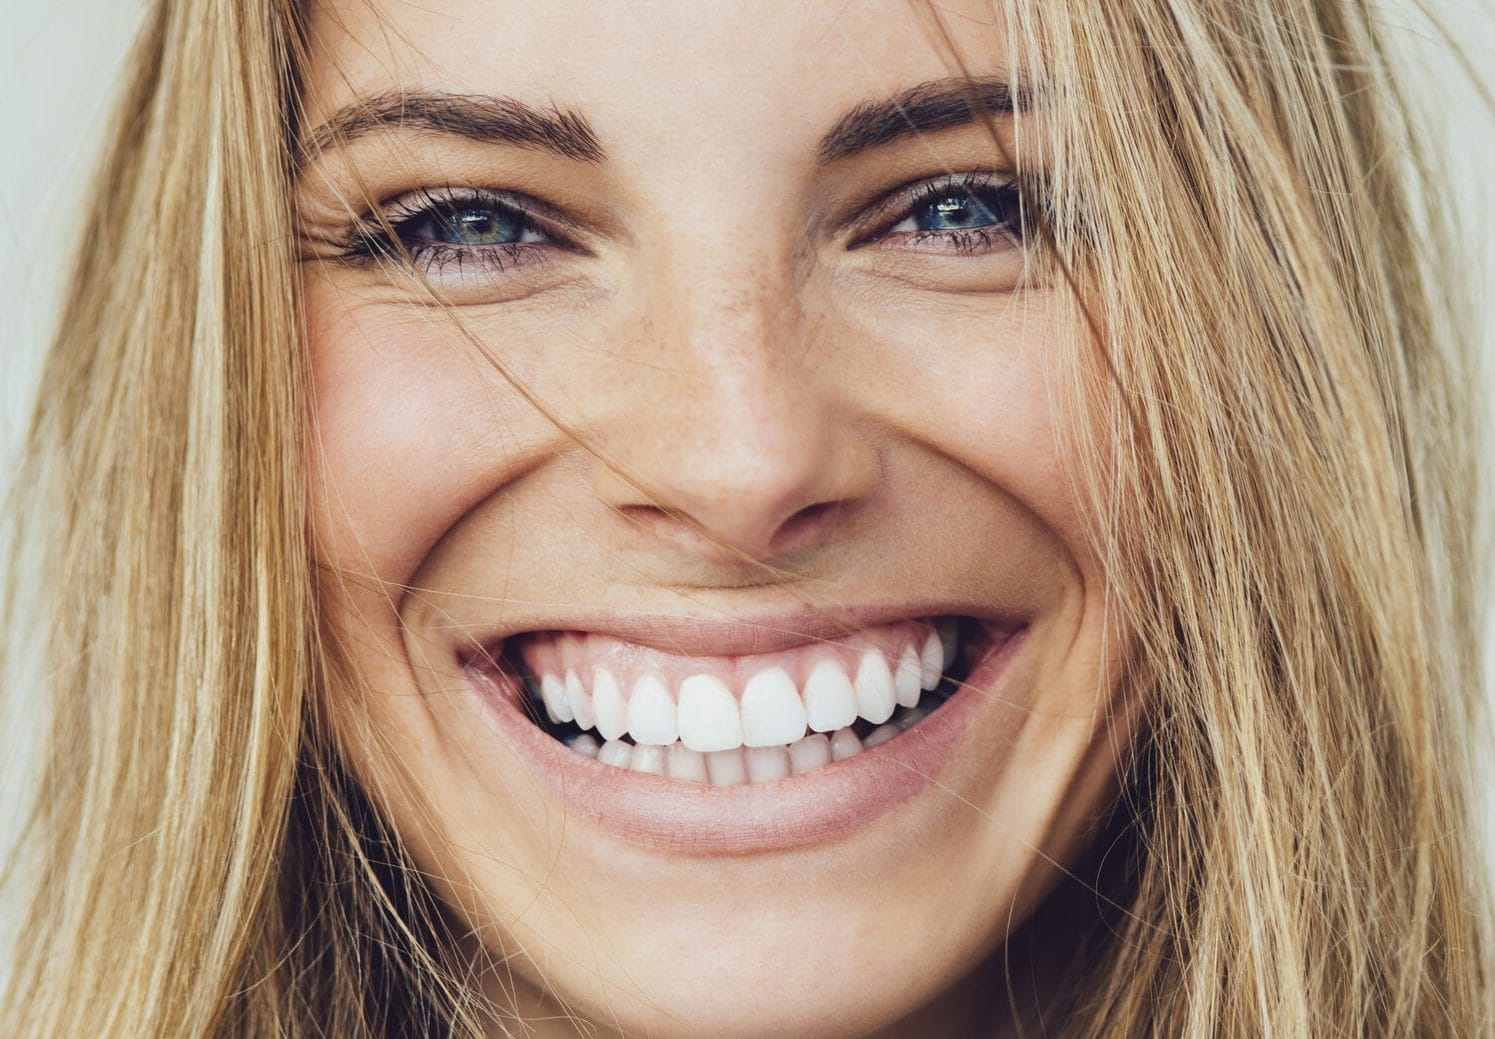 Happy Woman with a White Smile